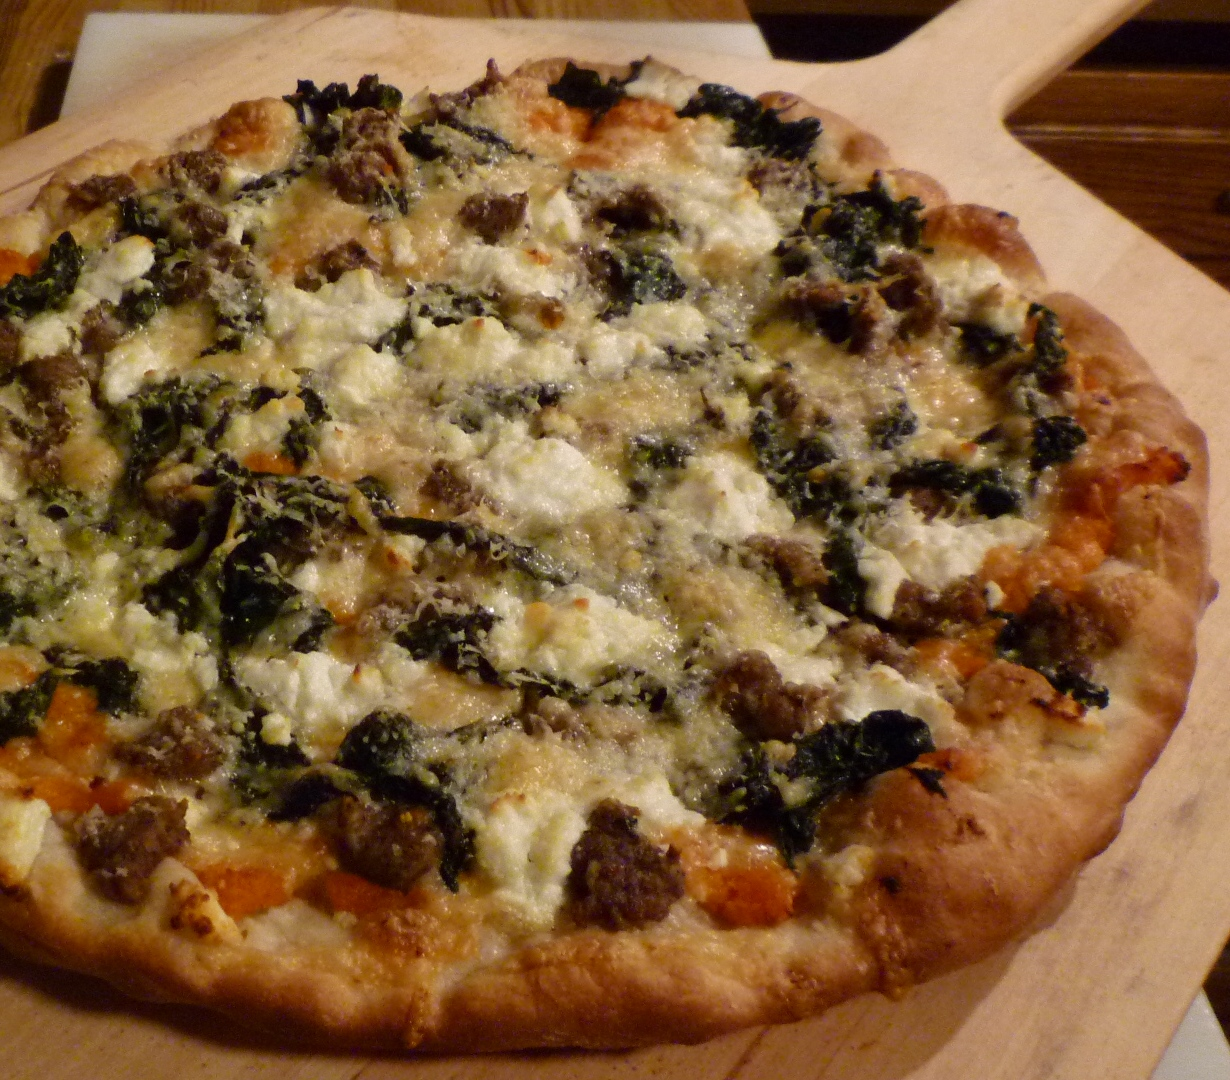 Watch Chanterelle Mushroom and Kale Pizza video